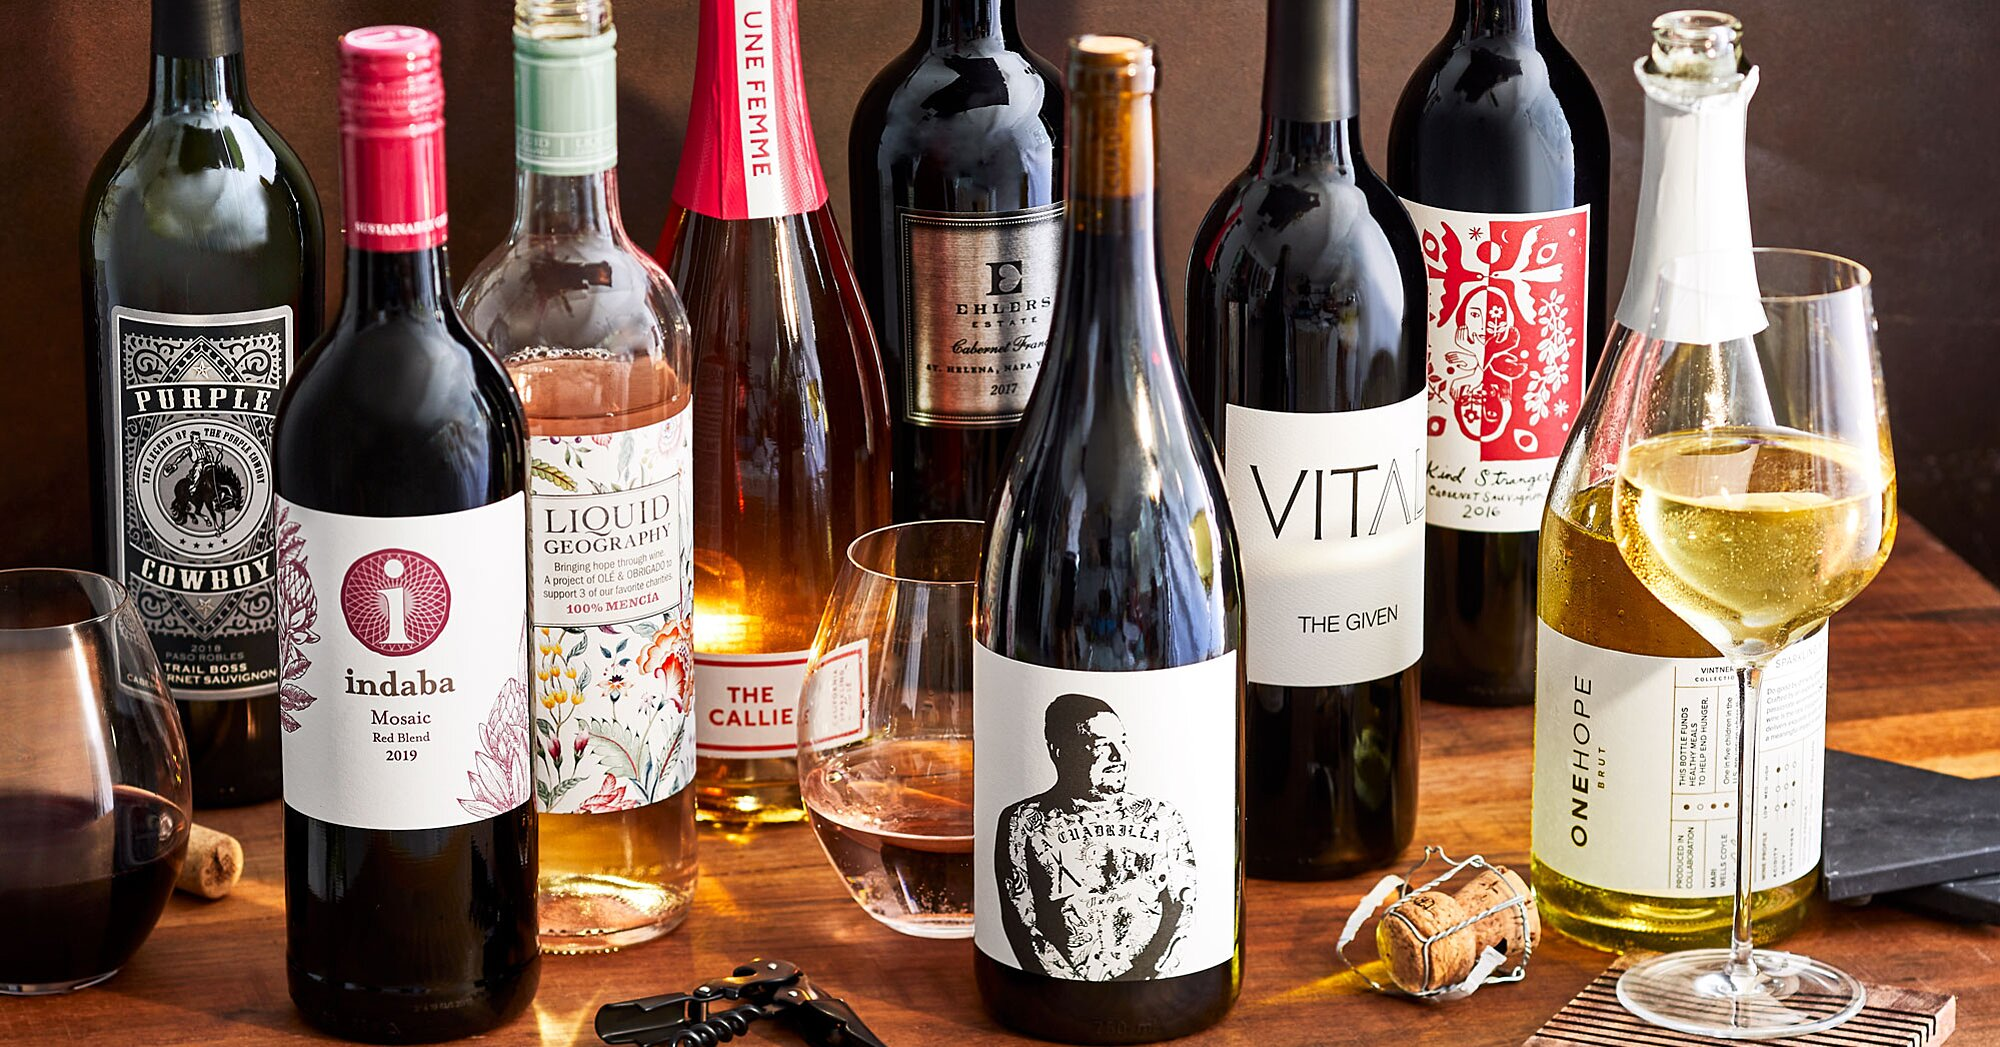 9 Charitable Wines That Donate To Causes We Love photo